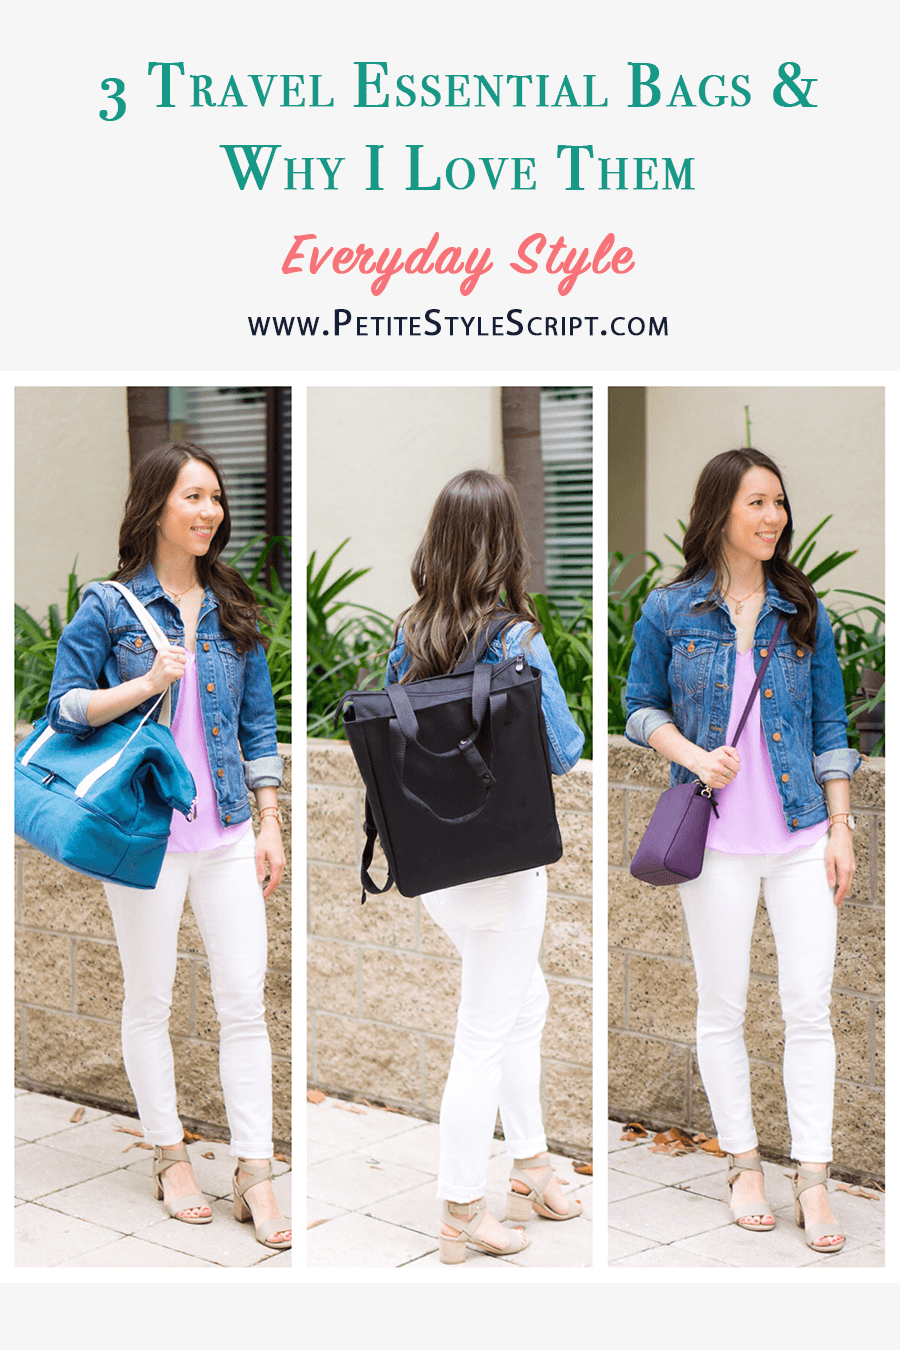 3 Travel Essentials I'm Loving this Season | Smart & Stylish Travel Bags | Lo & Sons Review | Lo & Sons Pearl crossbody bag | Edgemont Backpack | Catalina Deluxe Tote Bag Weekender Bag | M. Gemi Attorno Sandals | Paige white denim | J. Crew Scallop camisole and denim jacket